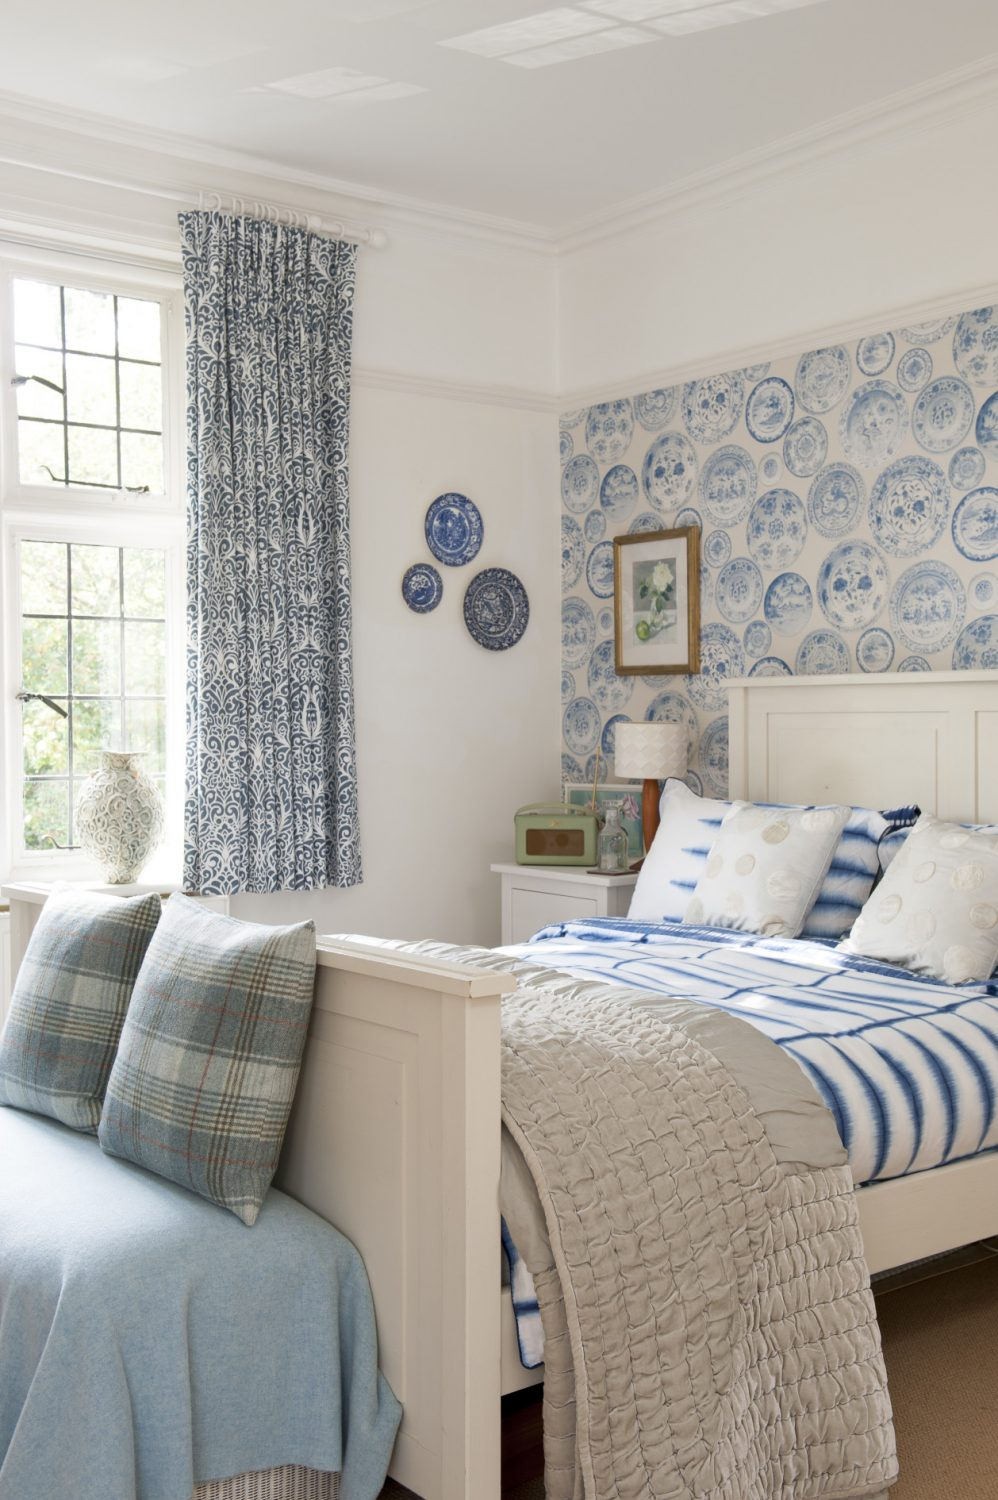 At the end of the landing is a really pretty guest room which features an Andrew Martin willow pattern plate design wallpaper, colours from which have been picked up in curtains, throws and cushions